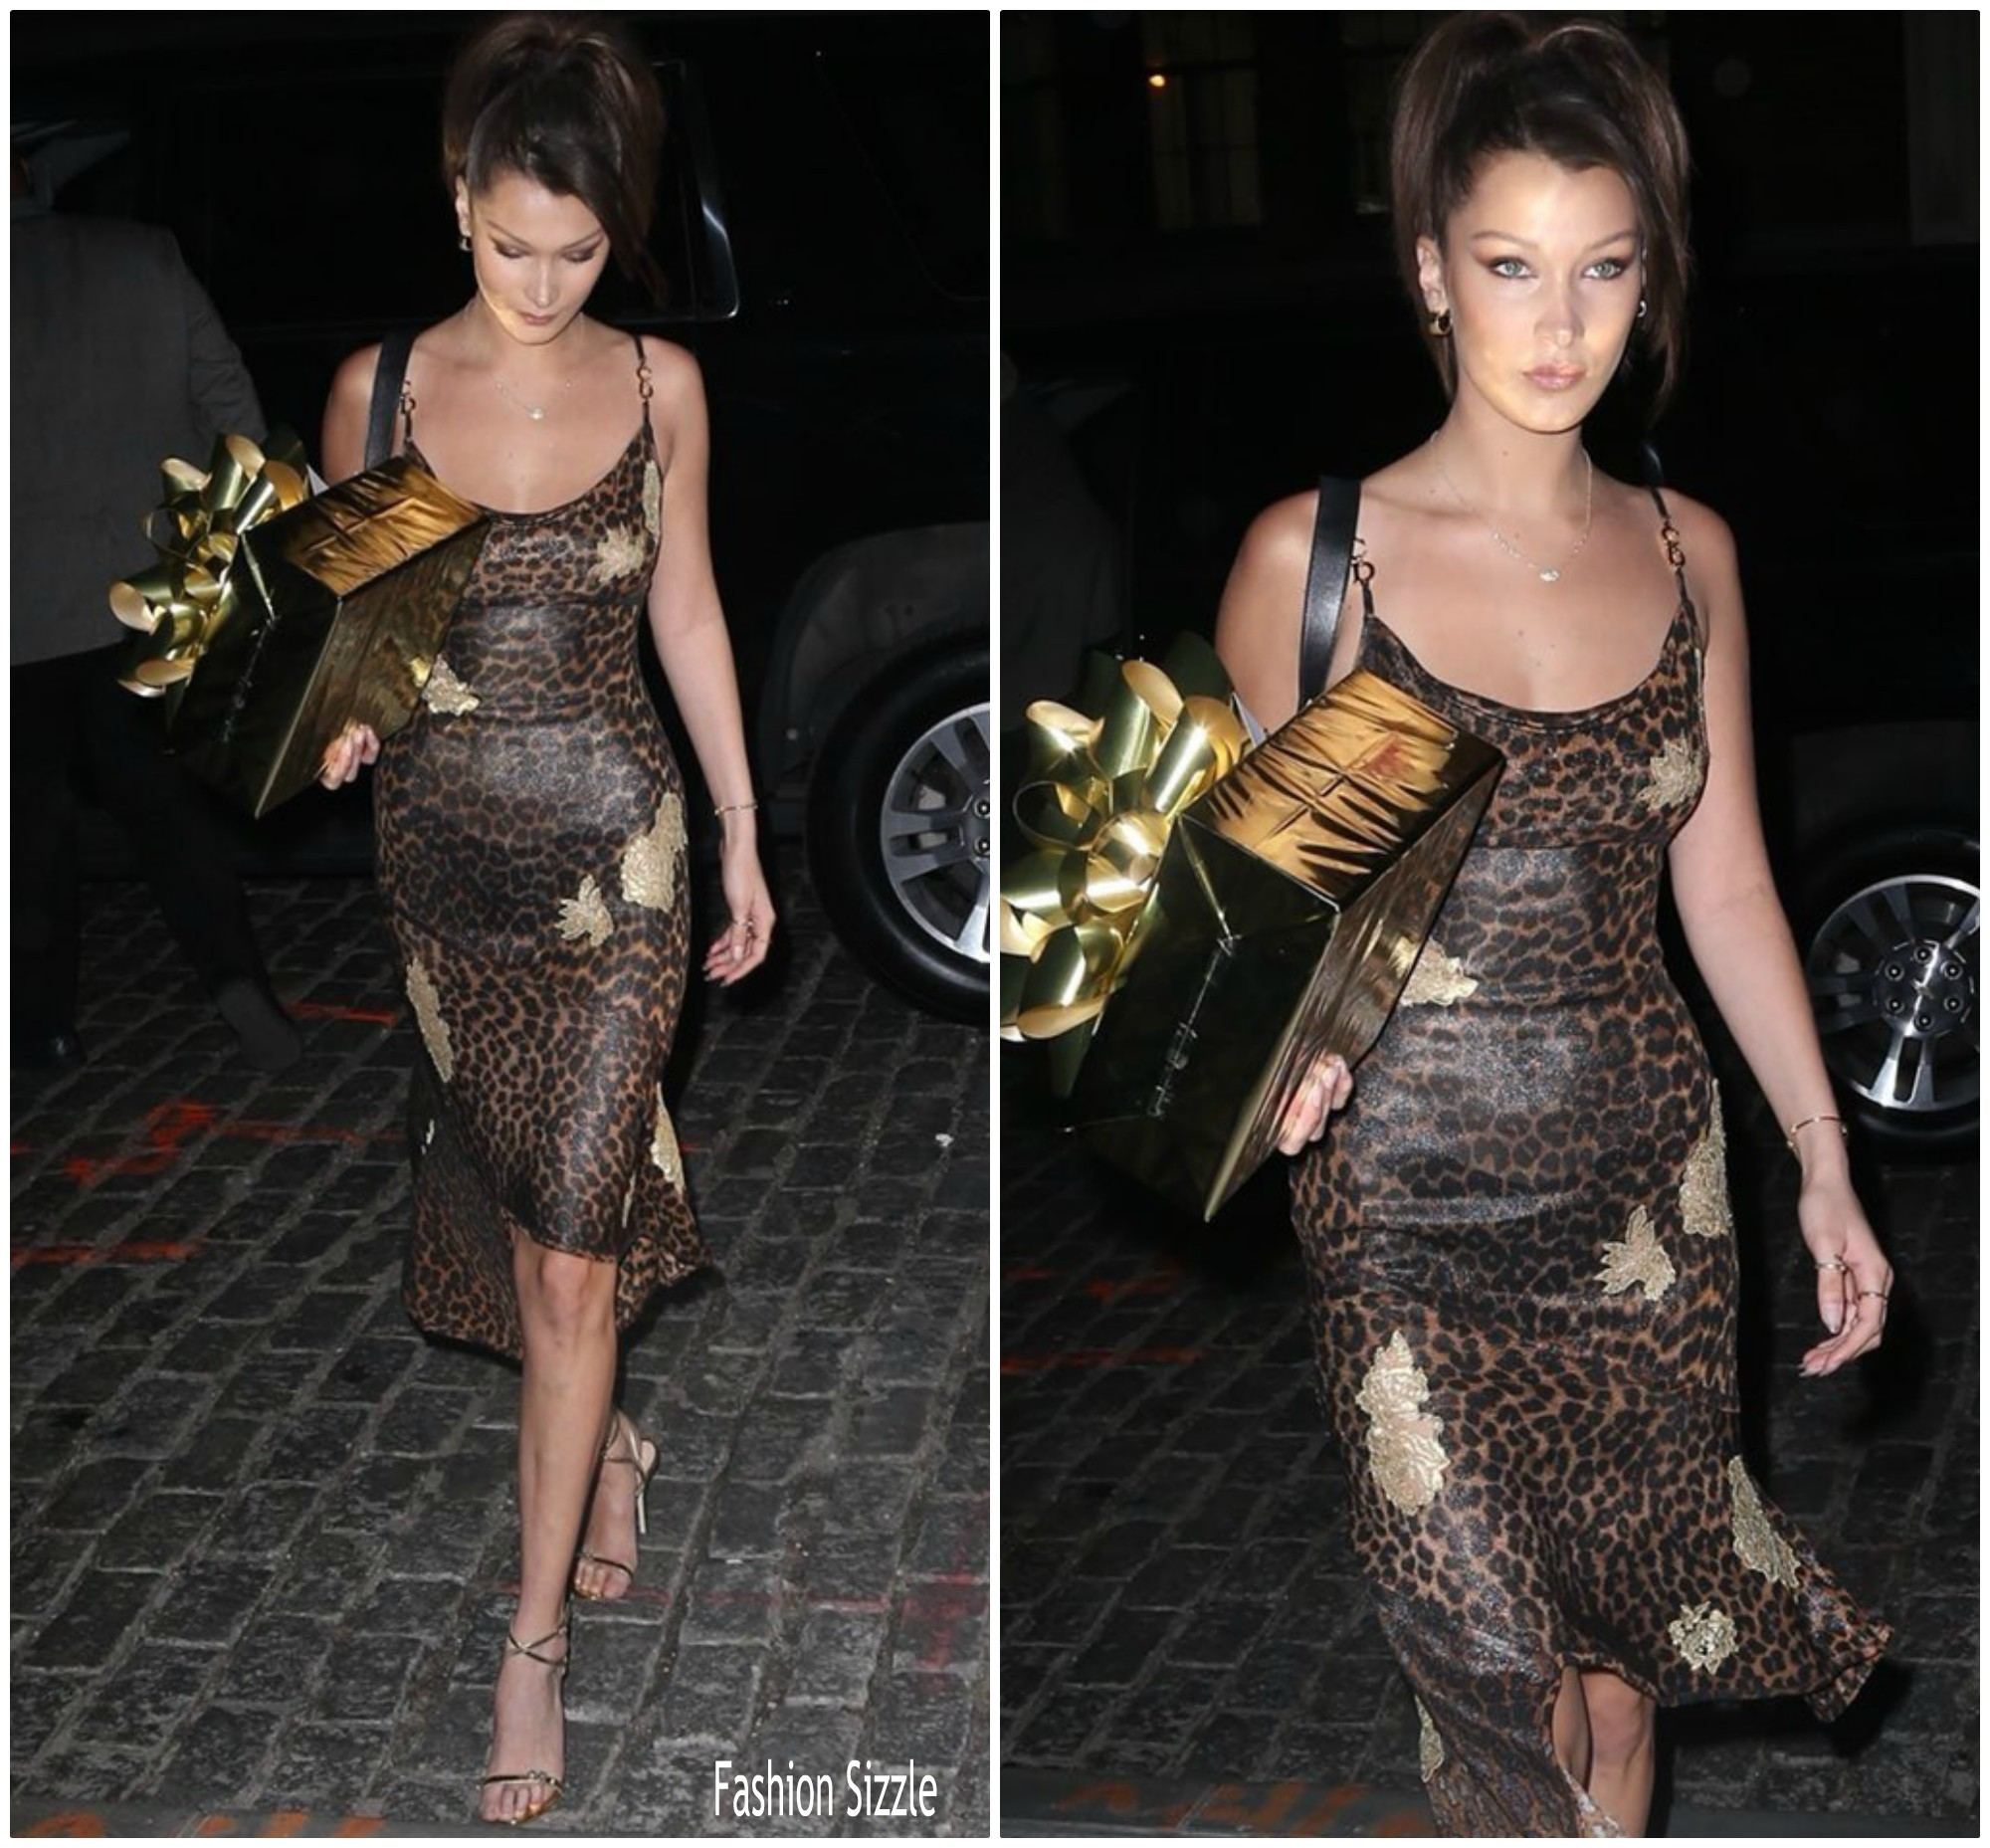 bella-hadid-in-vintage-christian-dior-gigi-hadid-23rd-birthday-party-in-new-york